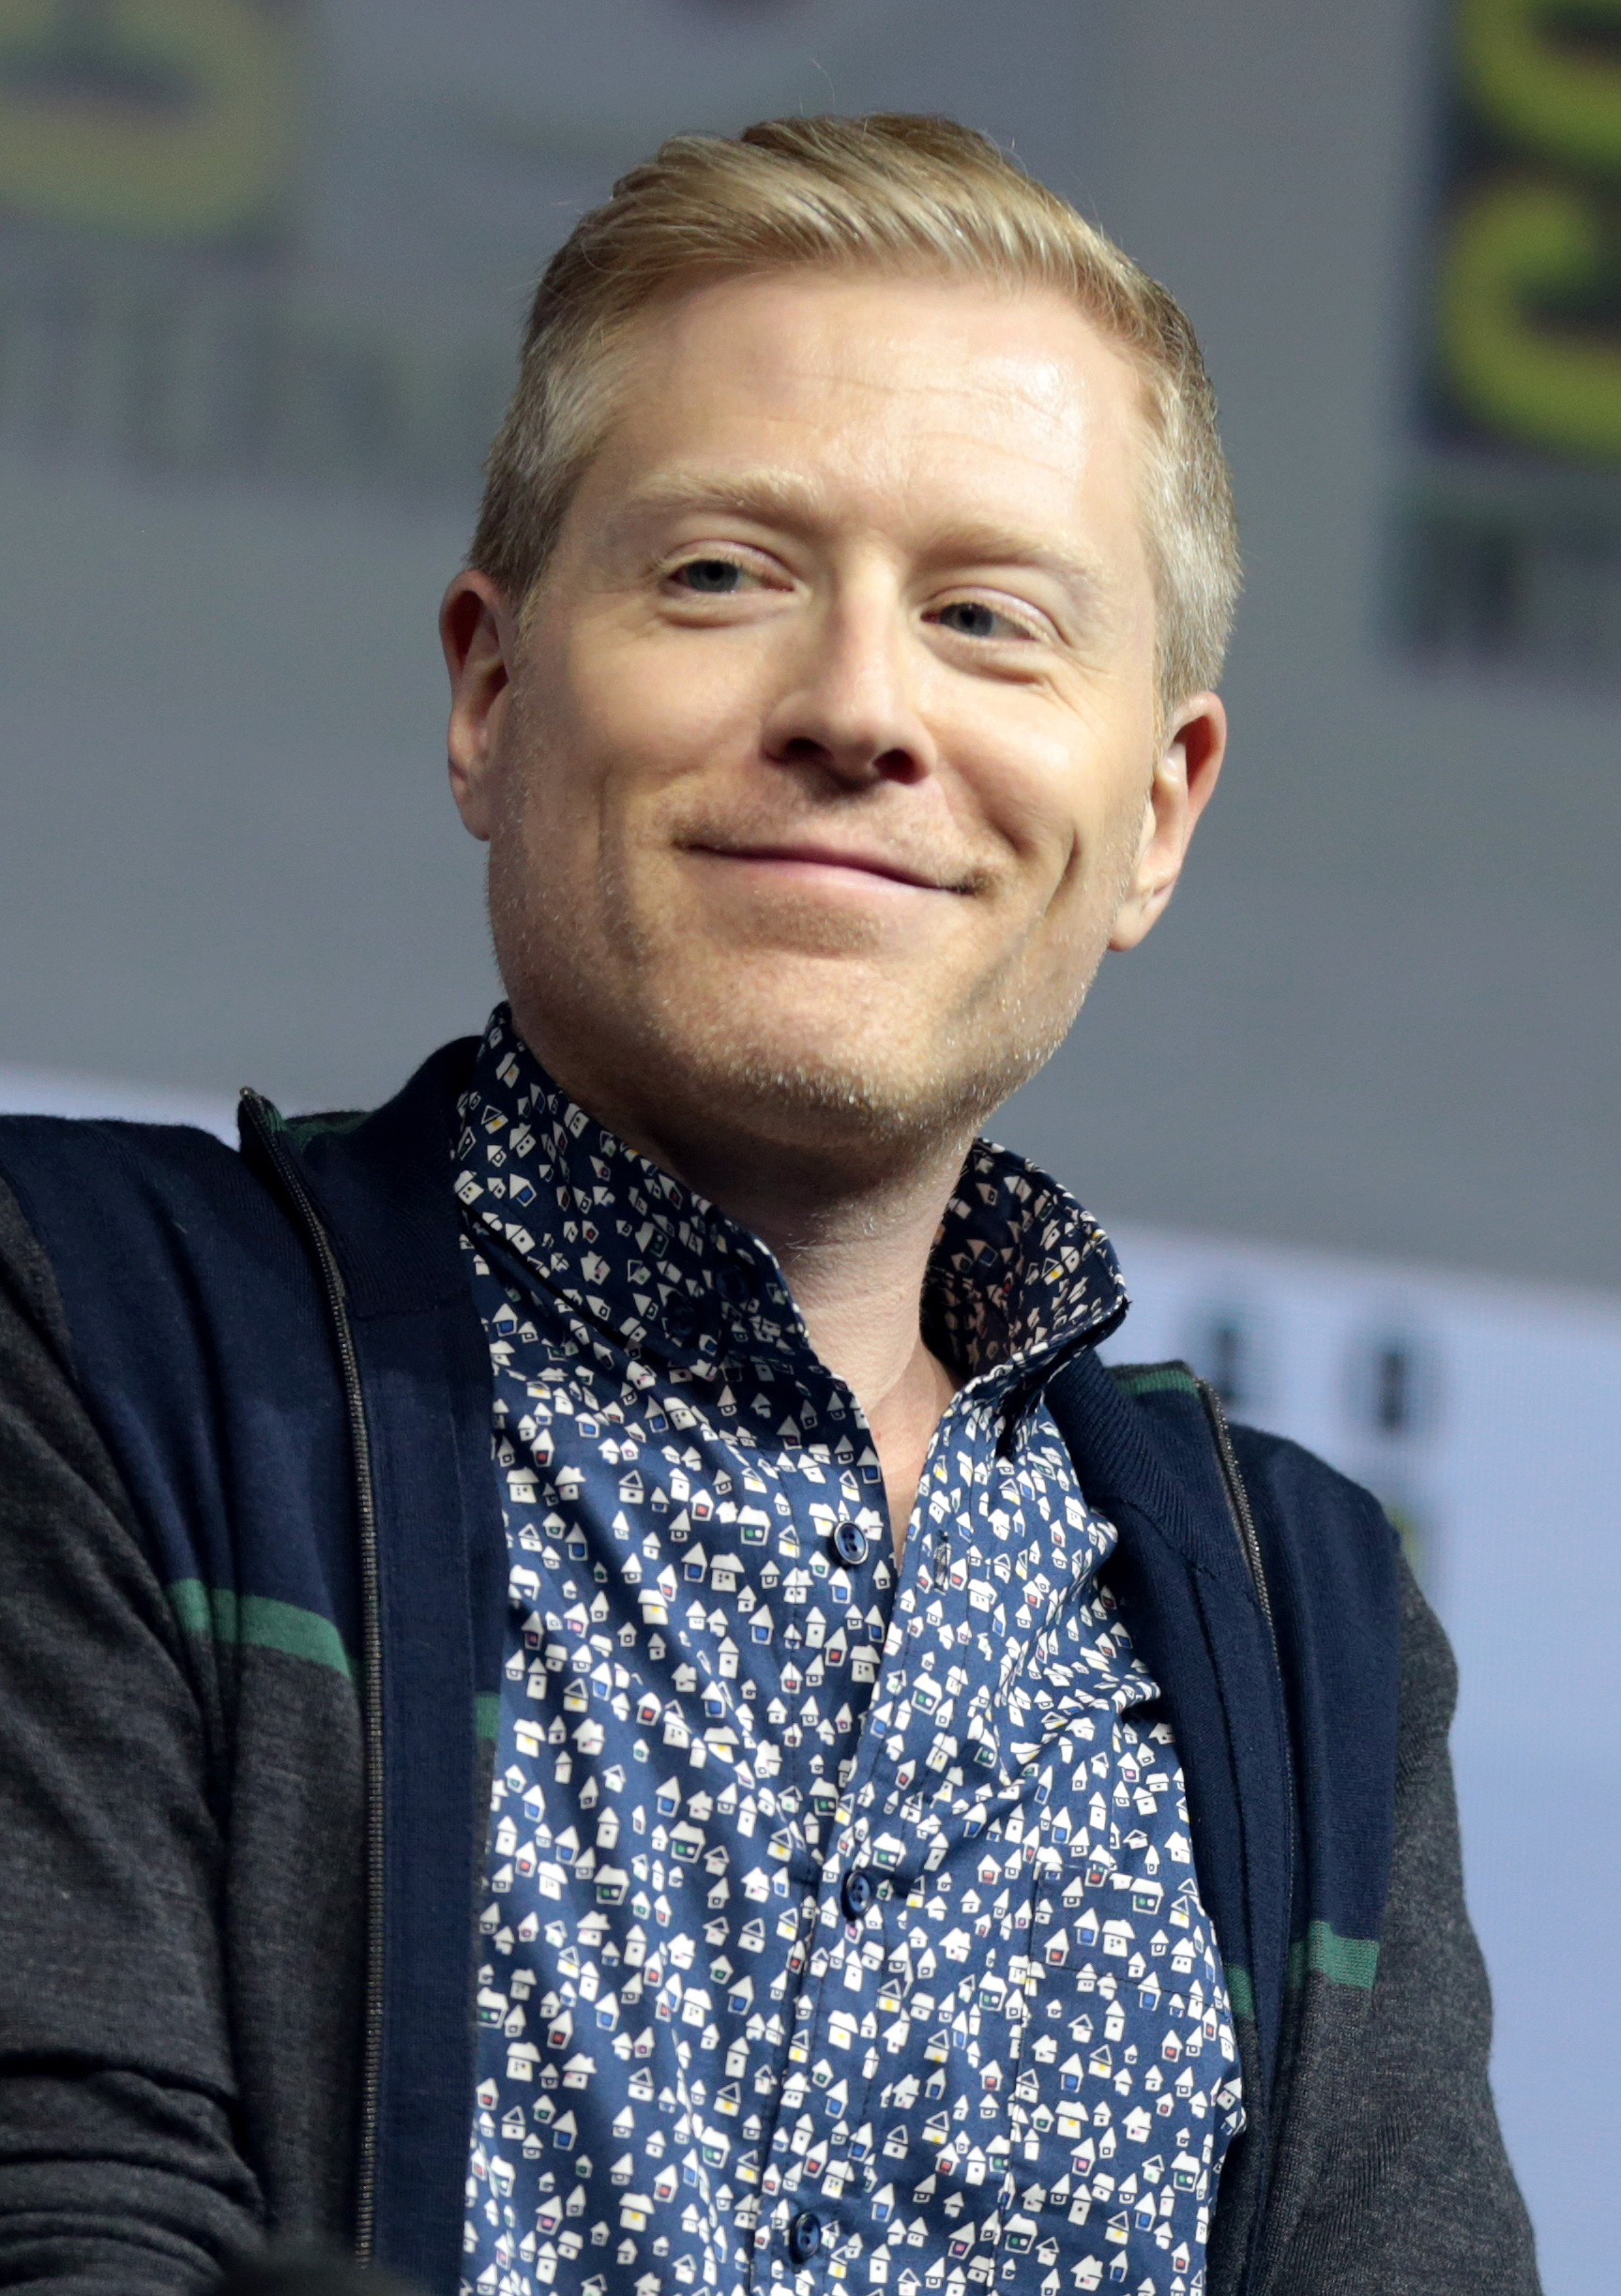 The 46-year old son of father Douglas Rapp and mother Mary Lee Baird Anthony Rapp in 2018 photo. Anthony Rapp earned a  million dollar salary - leaving the net worth at 1.5 million in 2018